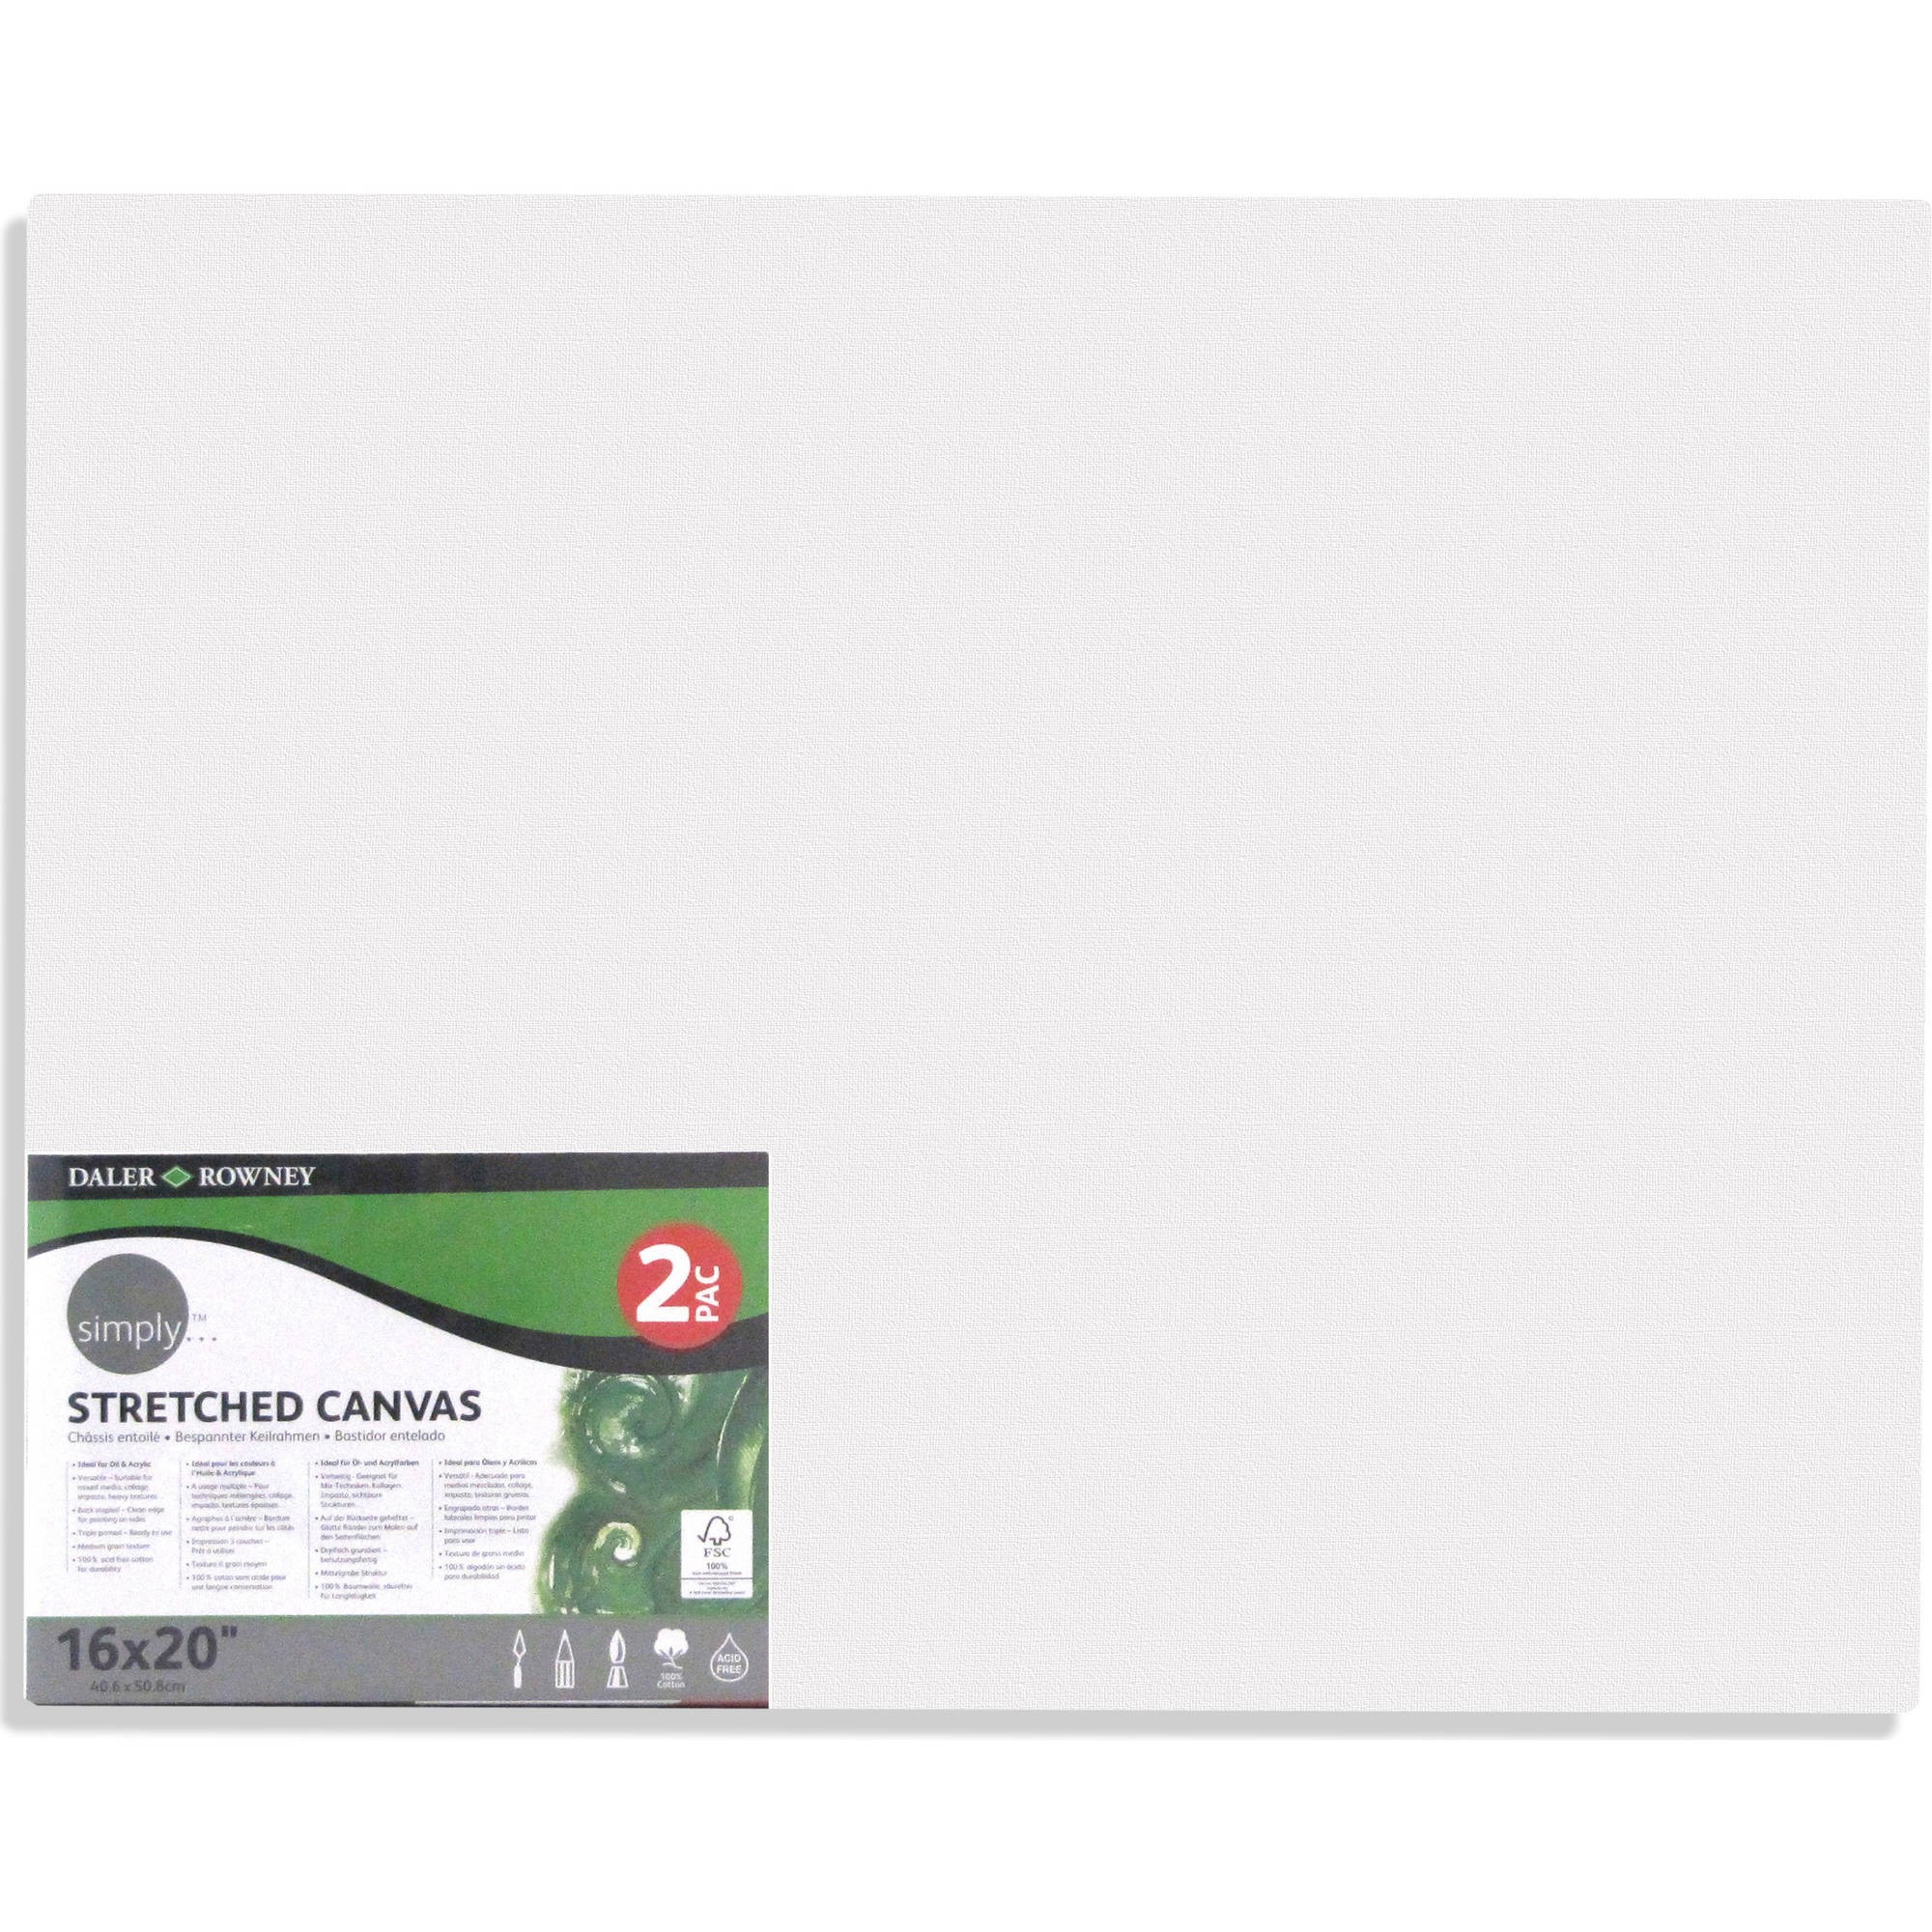 Daler-Rowney Simply Stretched Canvas Pack, 2 Piece